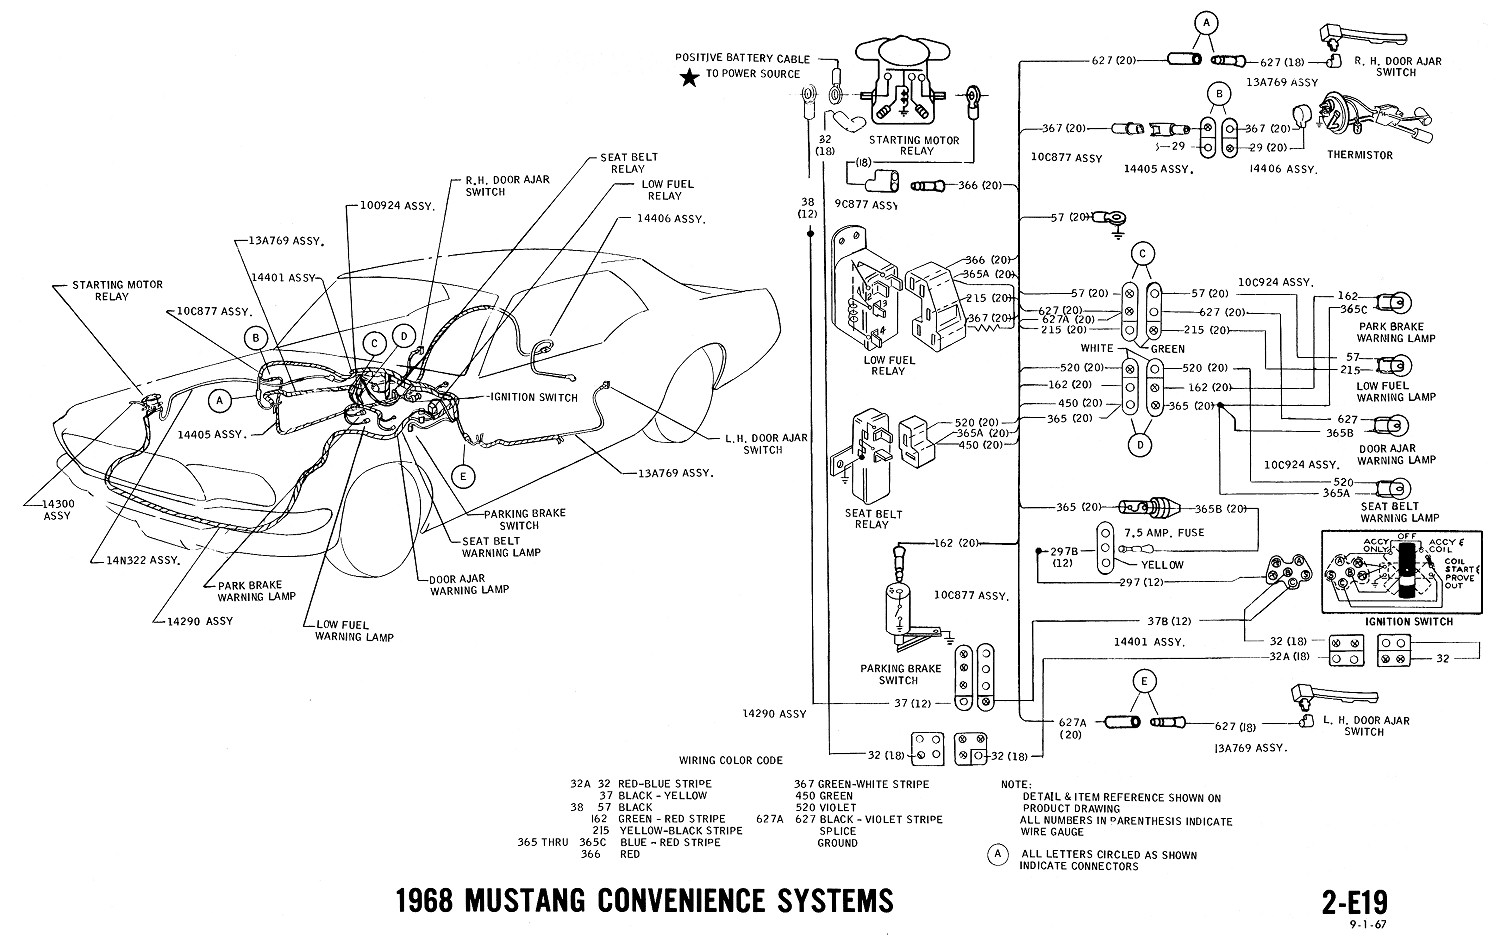 E19 1968 mustang wiring diagrams evolving software 69 camaro convertible top wiring diagram at bakdesigns.co